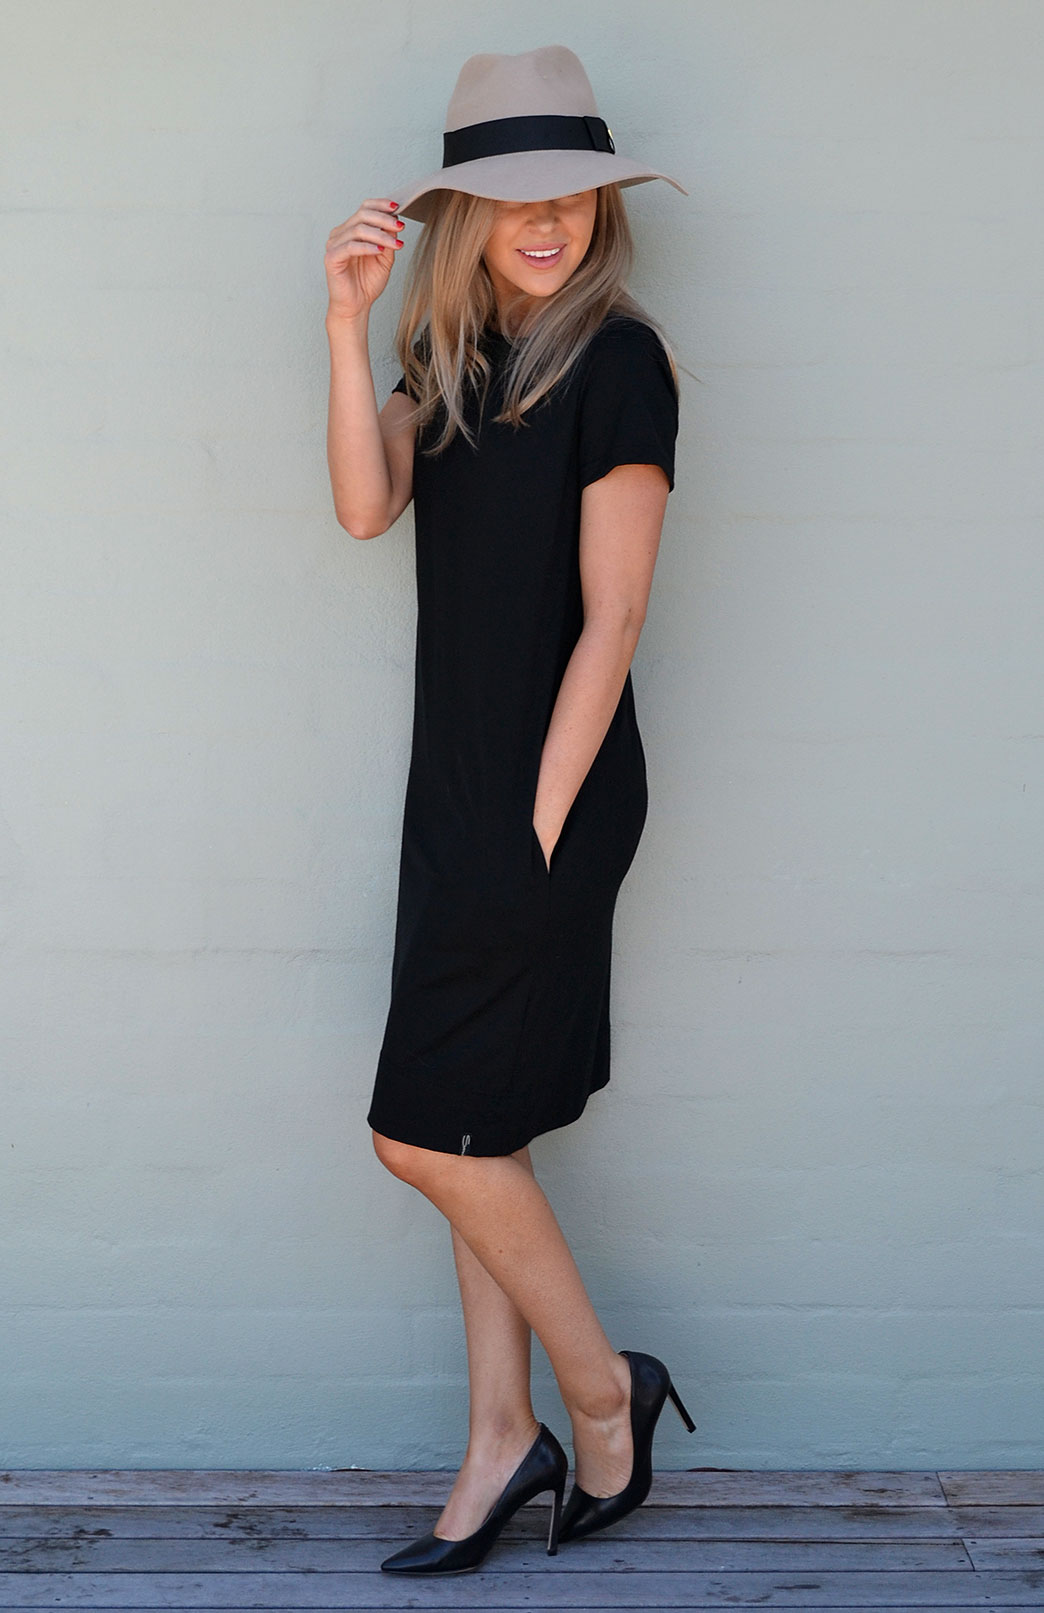 Tiffany Shift Dress - Women's Merino Wool Black Short Sleeved Shift Dress - Smitten Merino Tasmania Australia